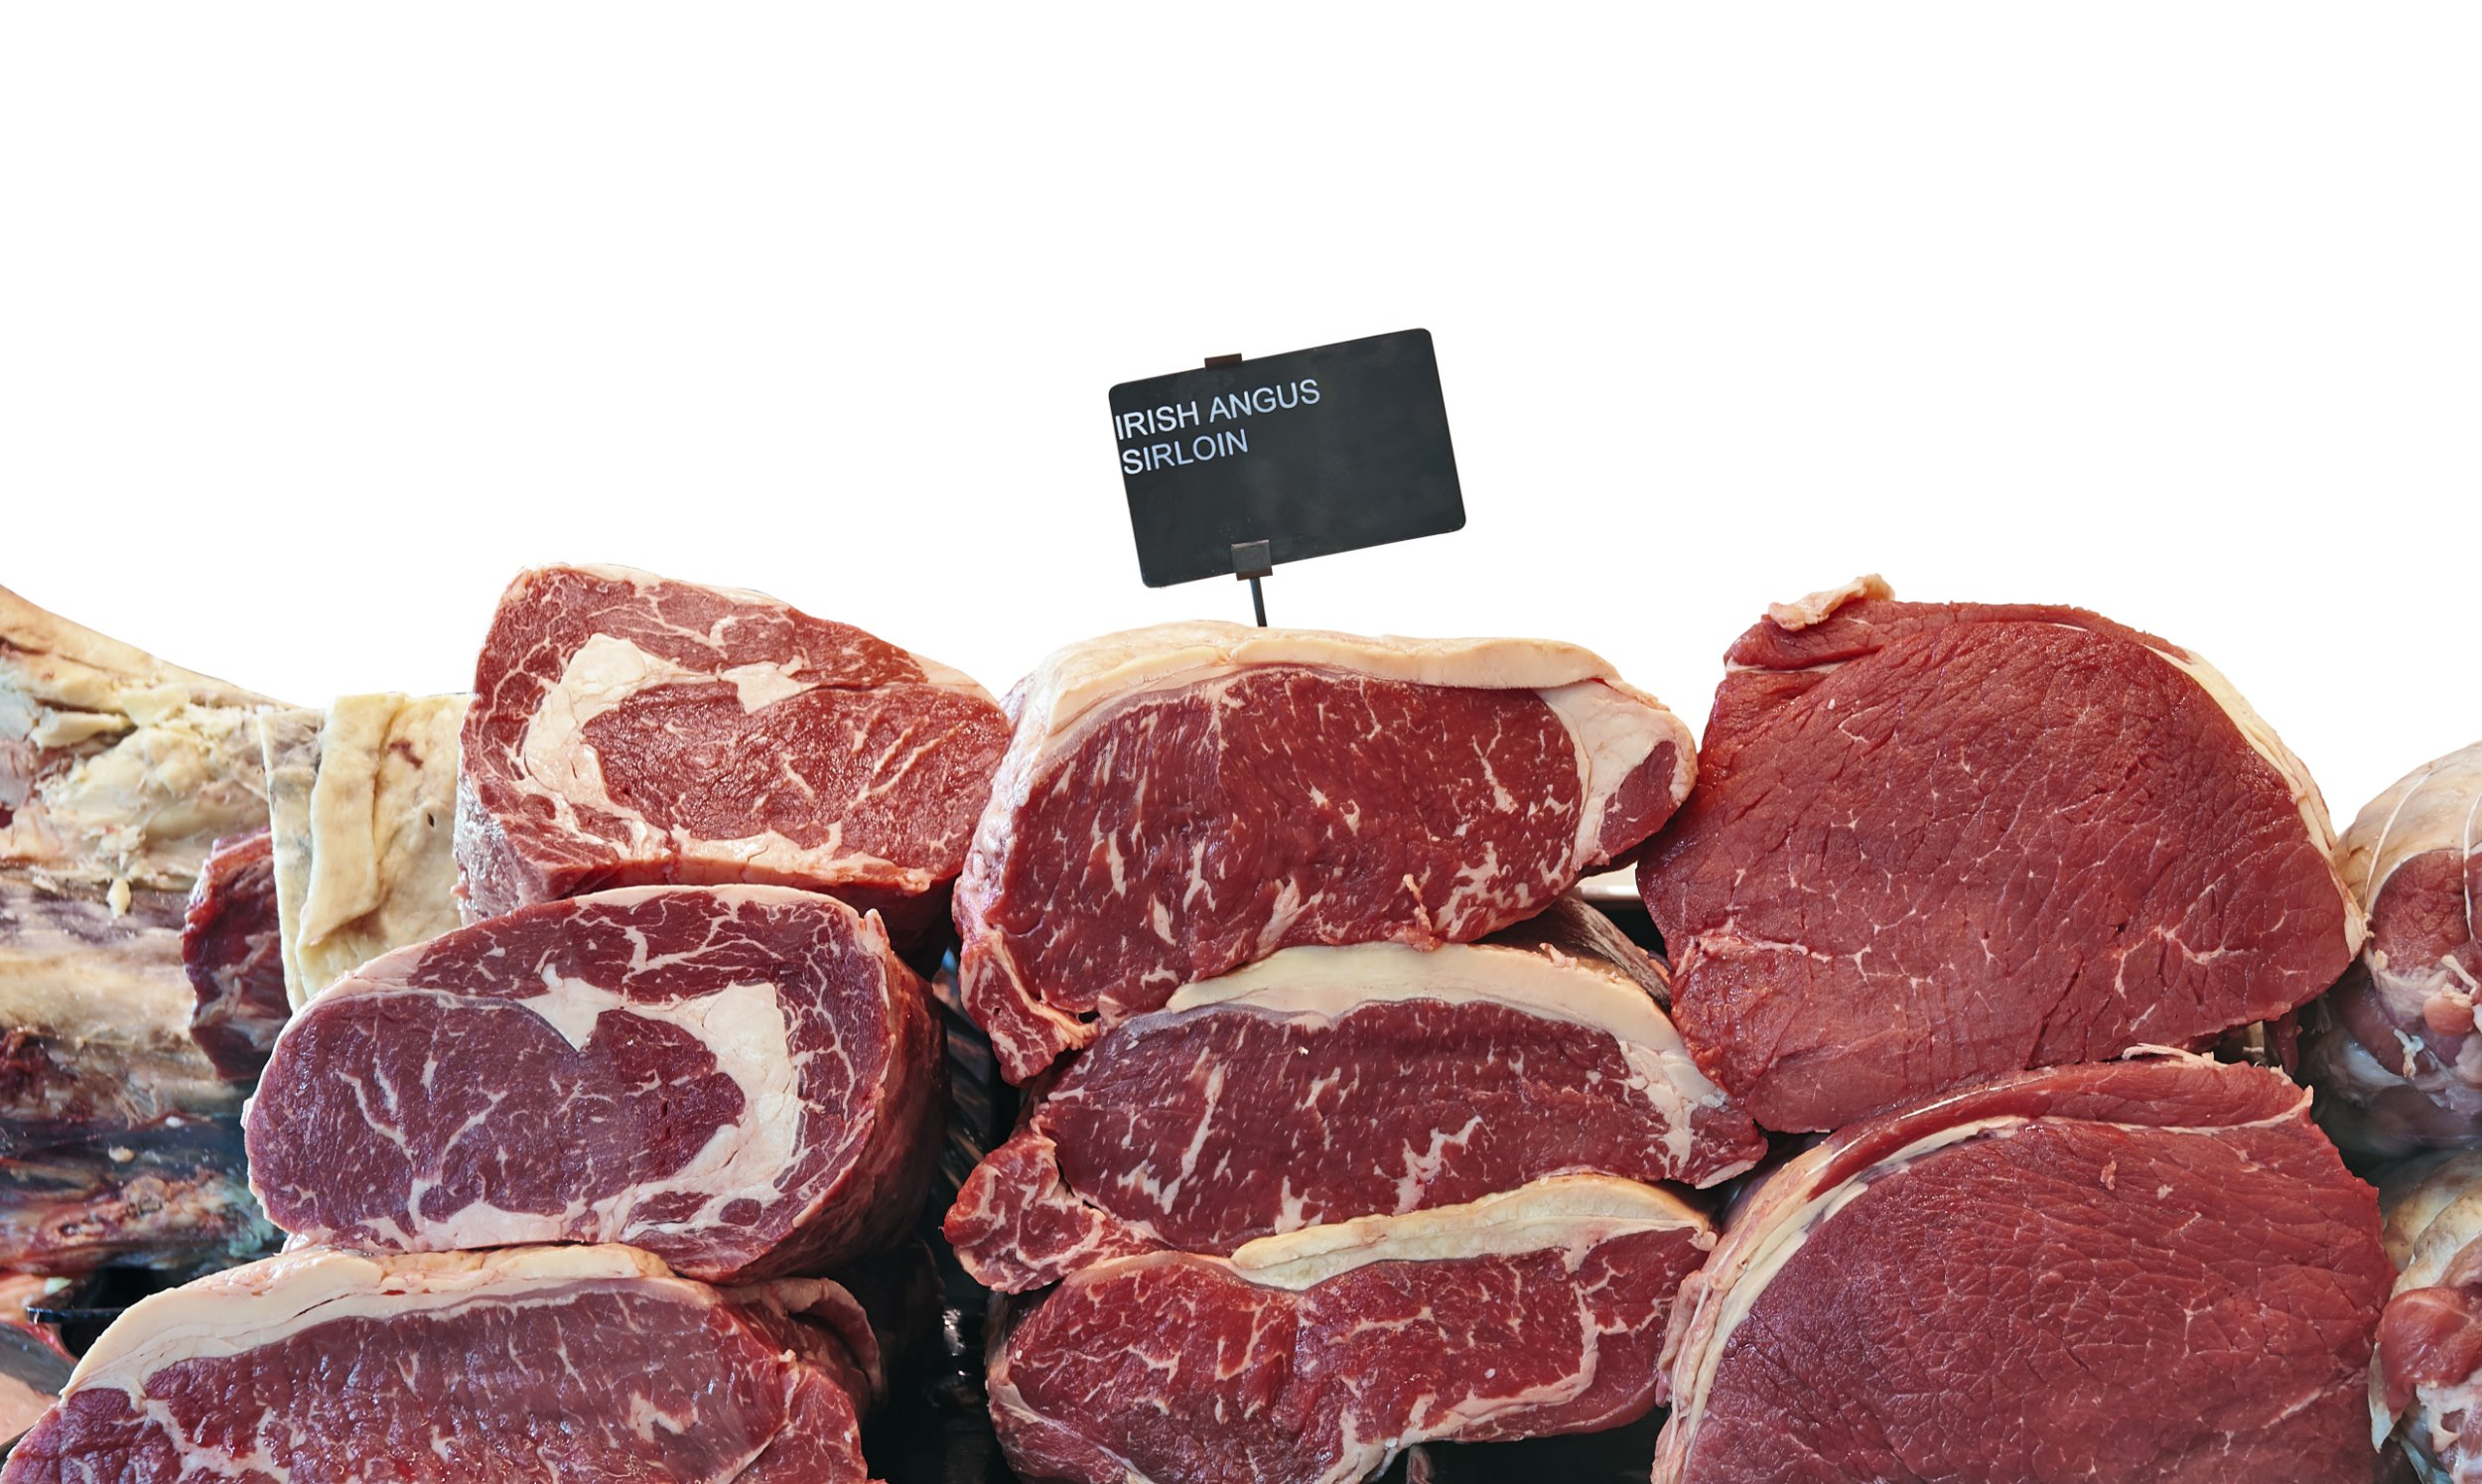 Fridge counter with variety of Irish angus beef meat isolated on white